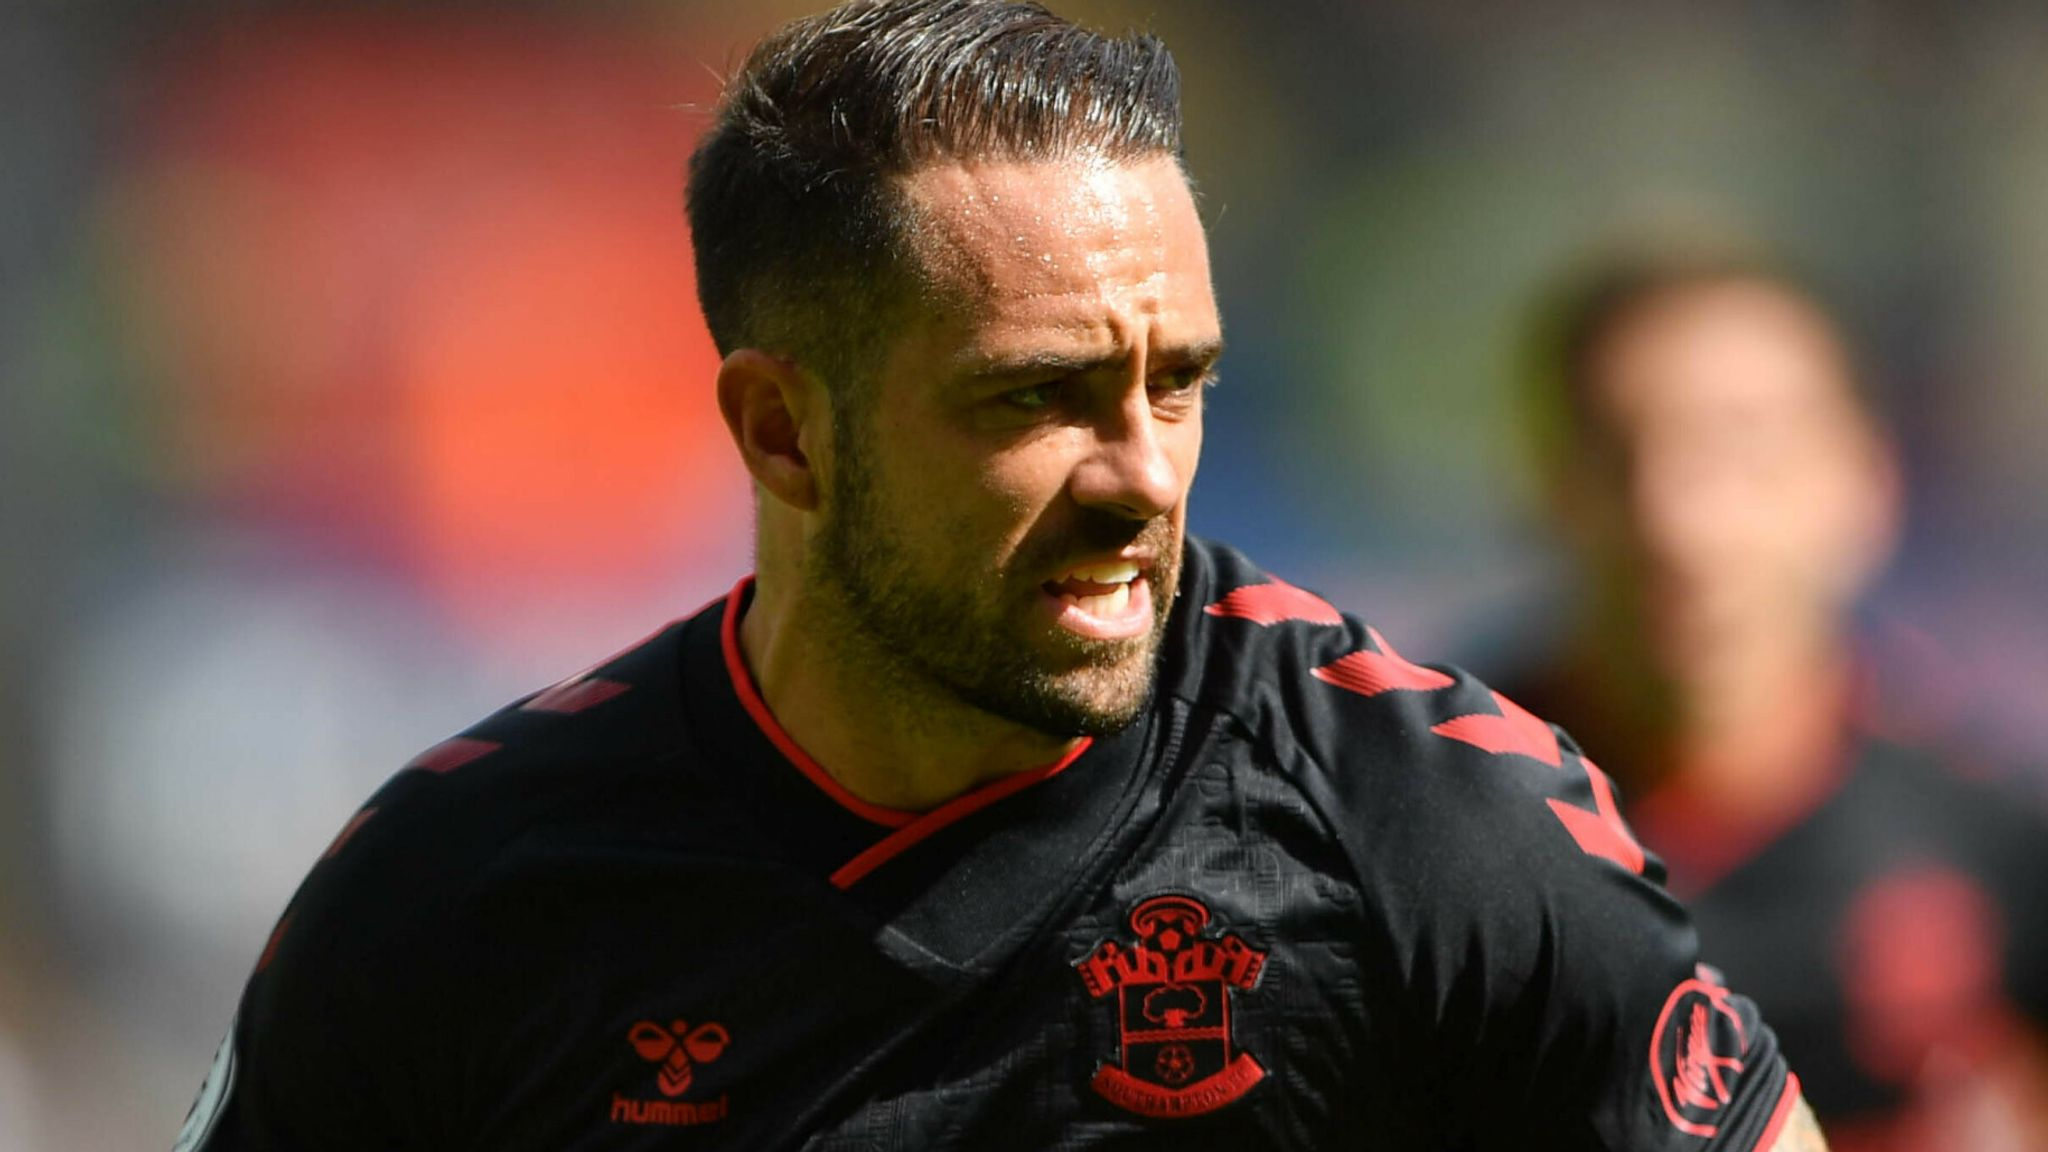 Report and highlights as danny ings sends a reminder to gareth southgate ahead of the euros; 5gfql0wu2bwhxm